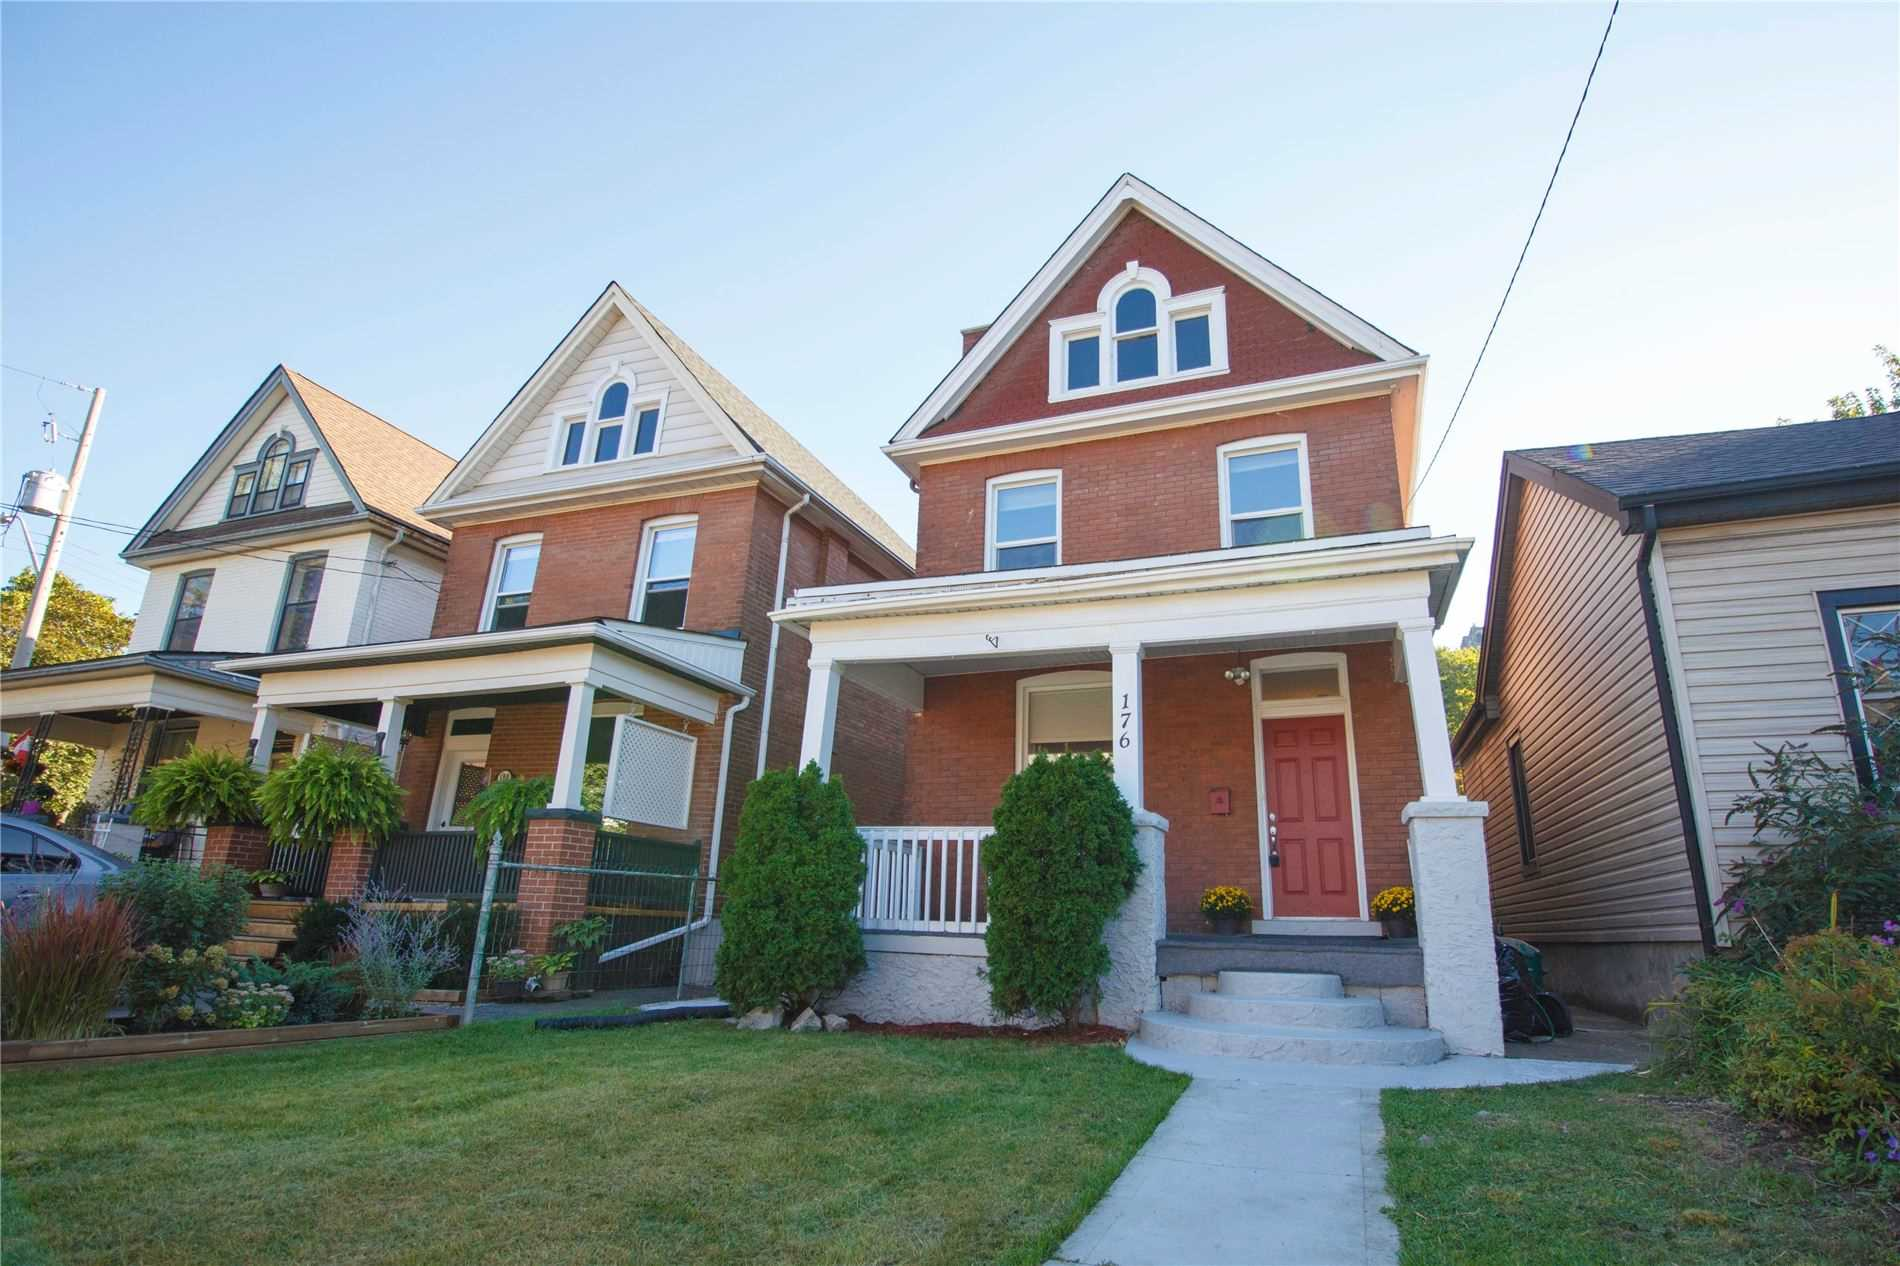 Detached house For Sale In Hamilton - 176 Cumberland Ave, Hamilton, Ontario, Canada L8M 1Z5 , 3 Bedrooms Bedrooms, ,2 BathroomsBathrooms,Detached,For Sale,Cumberland